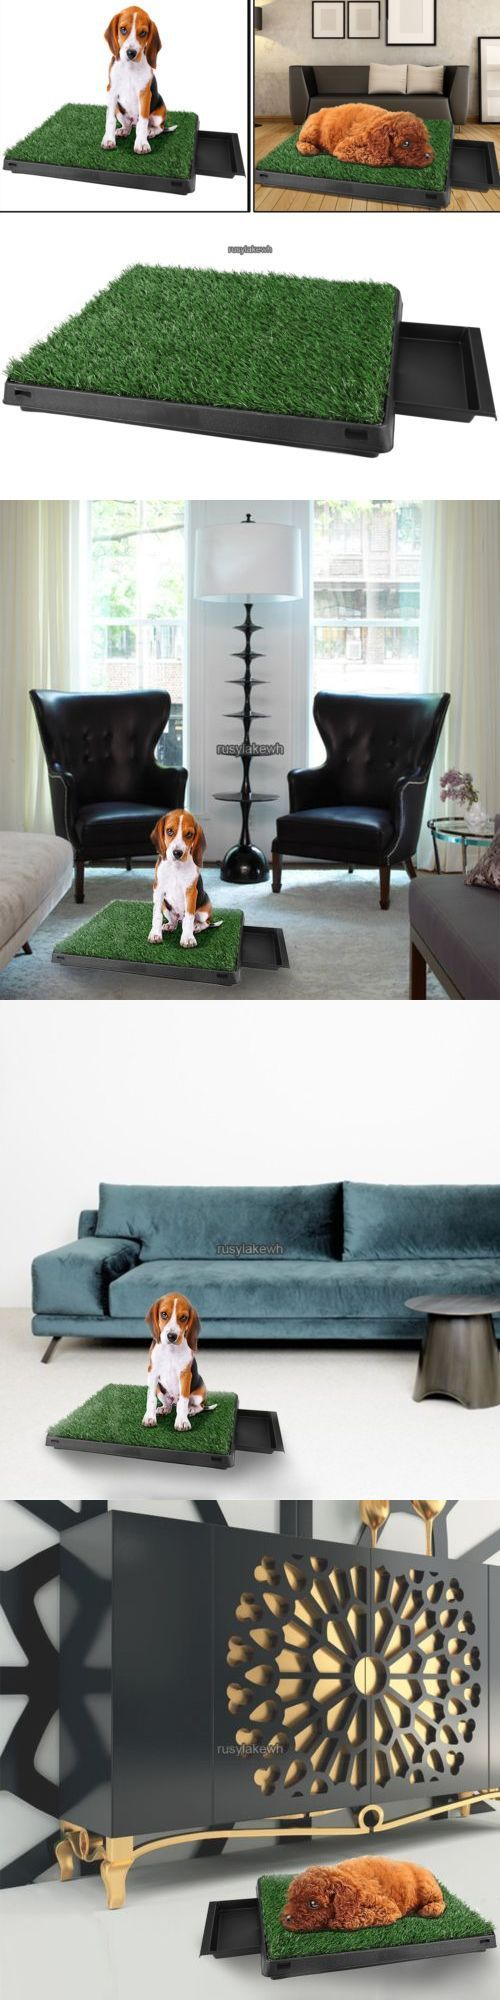 9 best dog potty images on pinterest dog accessories pets and dog